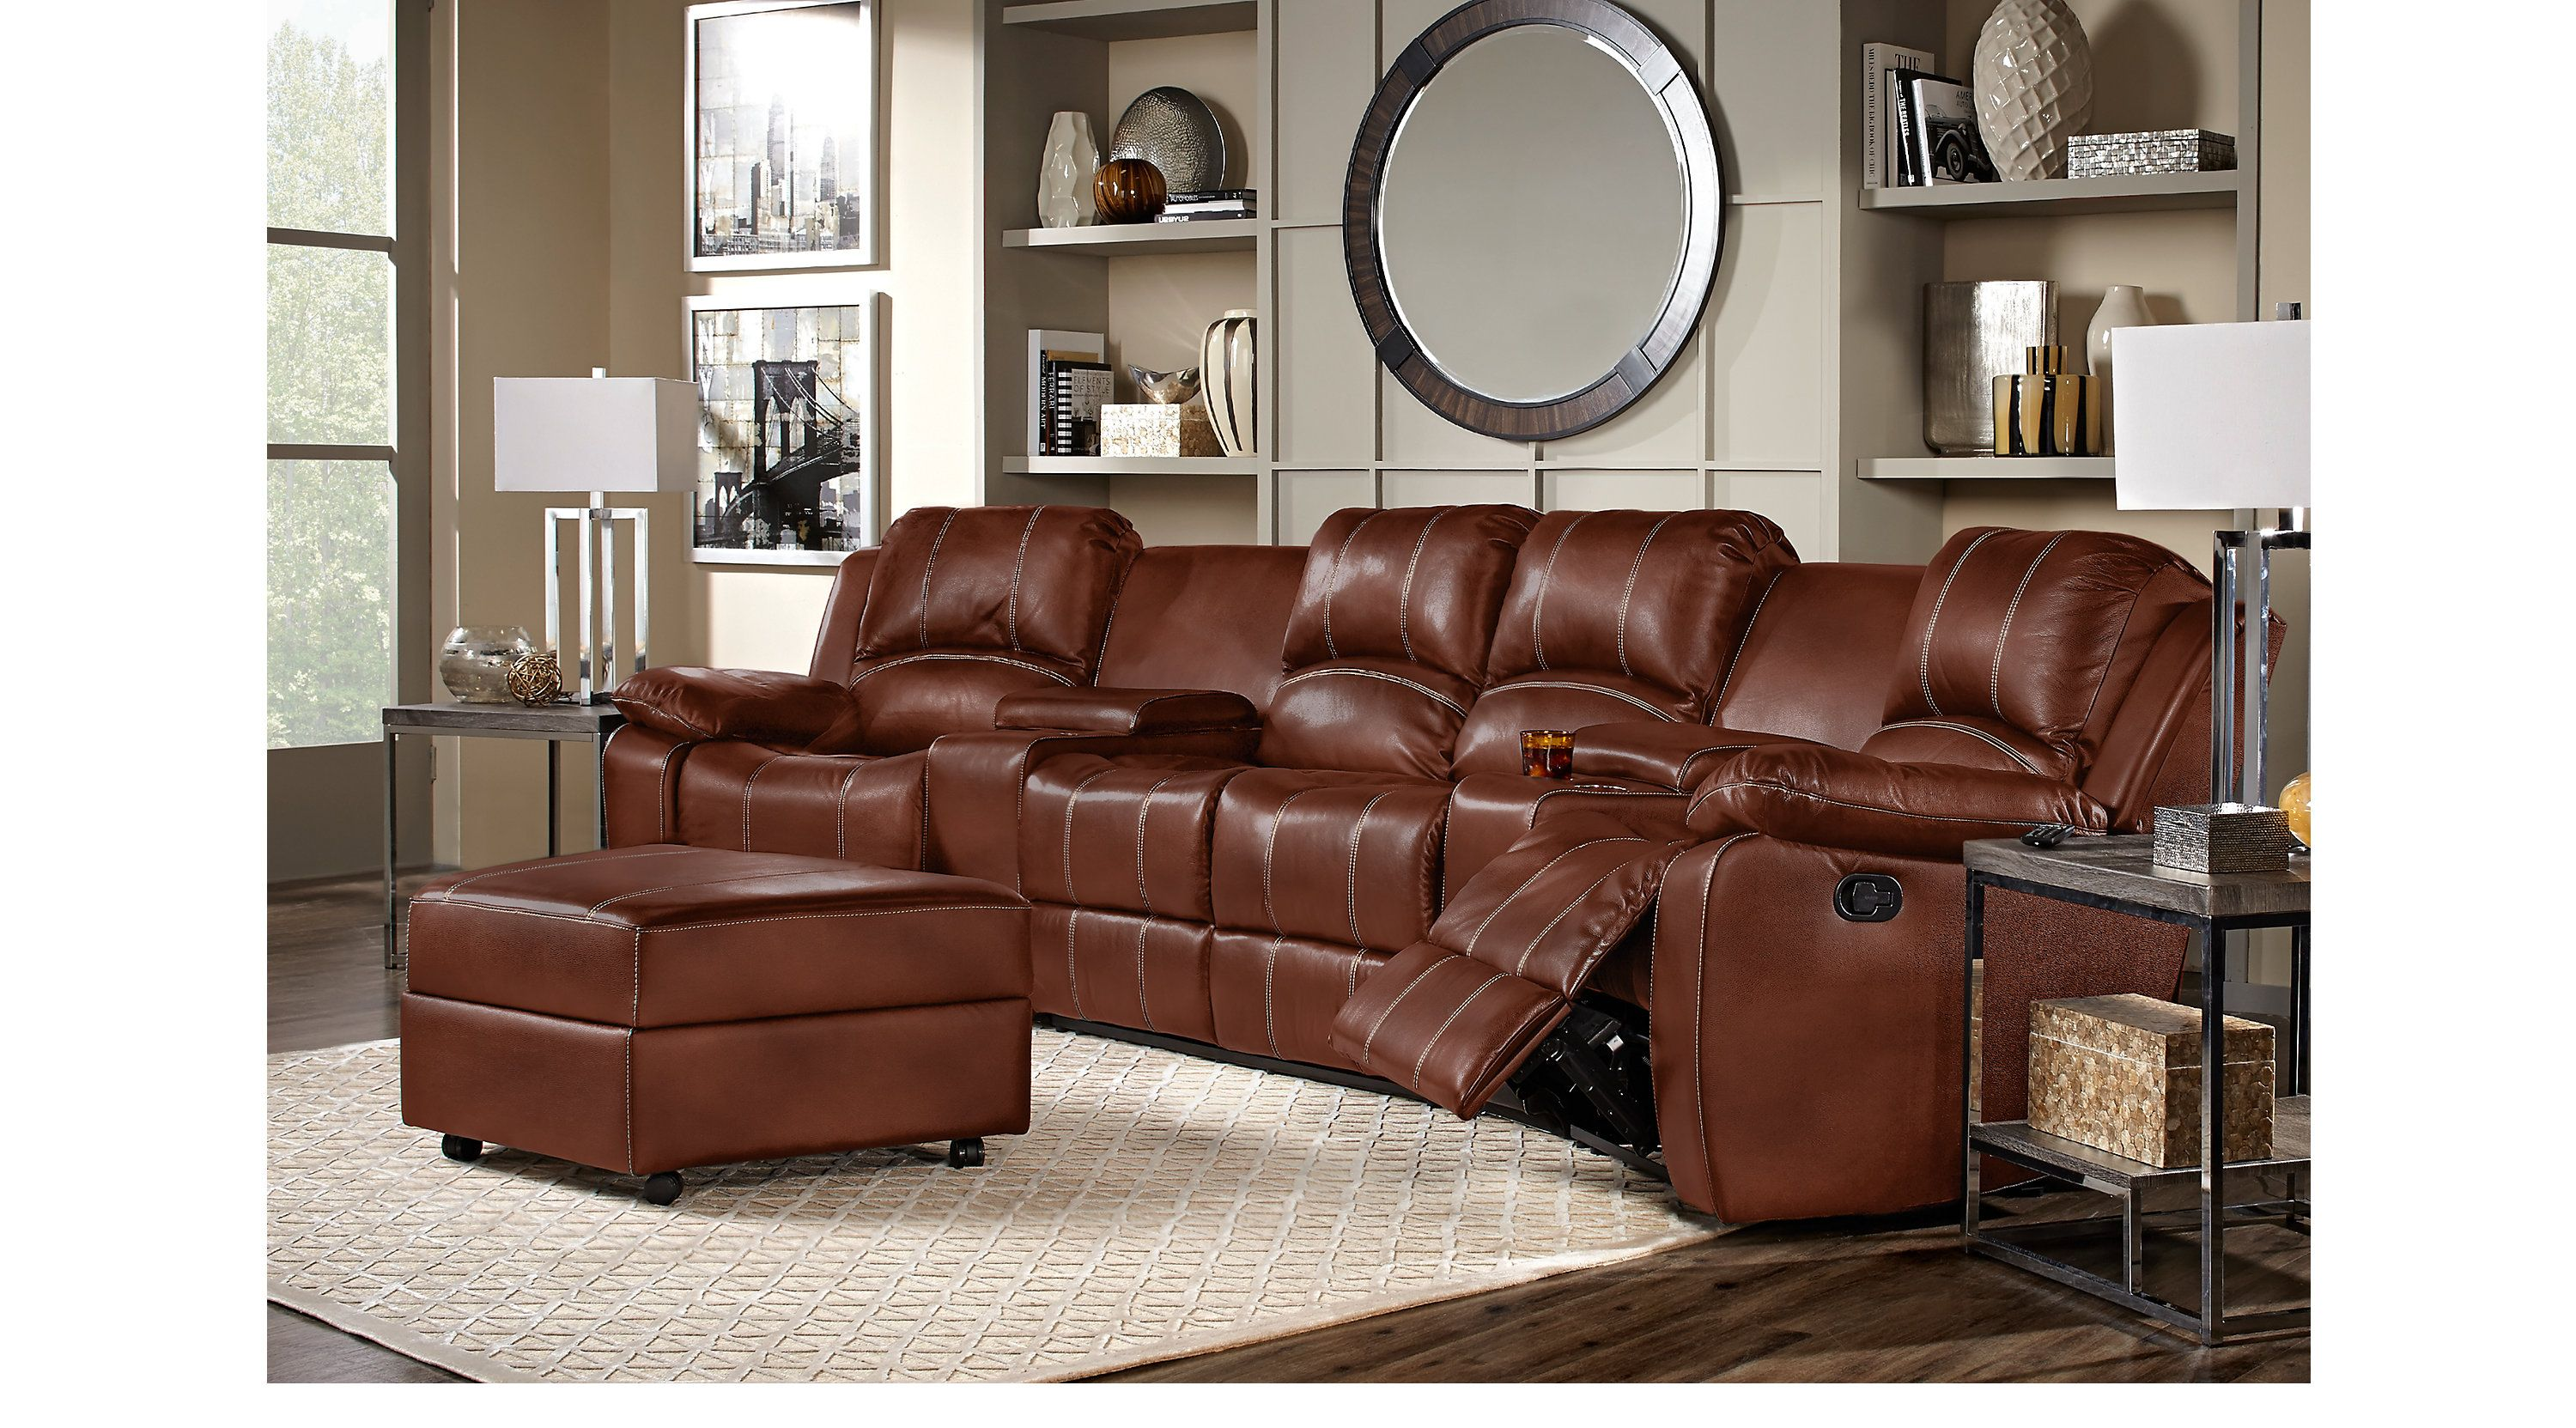 Leather Living Rooms Rooms To Go Fenway Heights Brown 6 Pc Leather Reclining Sectional Living Room 1261582p Living Room Sets Furniture Leather Living Room Set Living Room Leather #rooms #to #go #living #room #sectionals